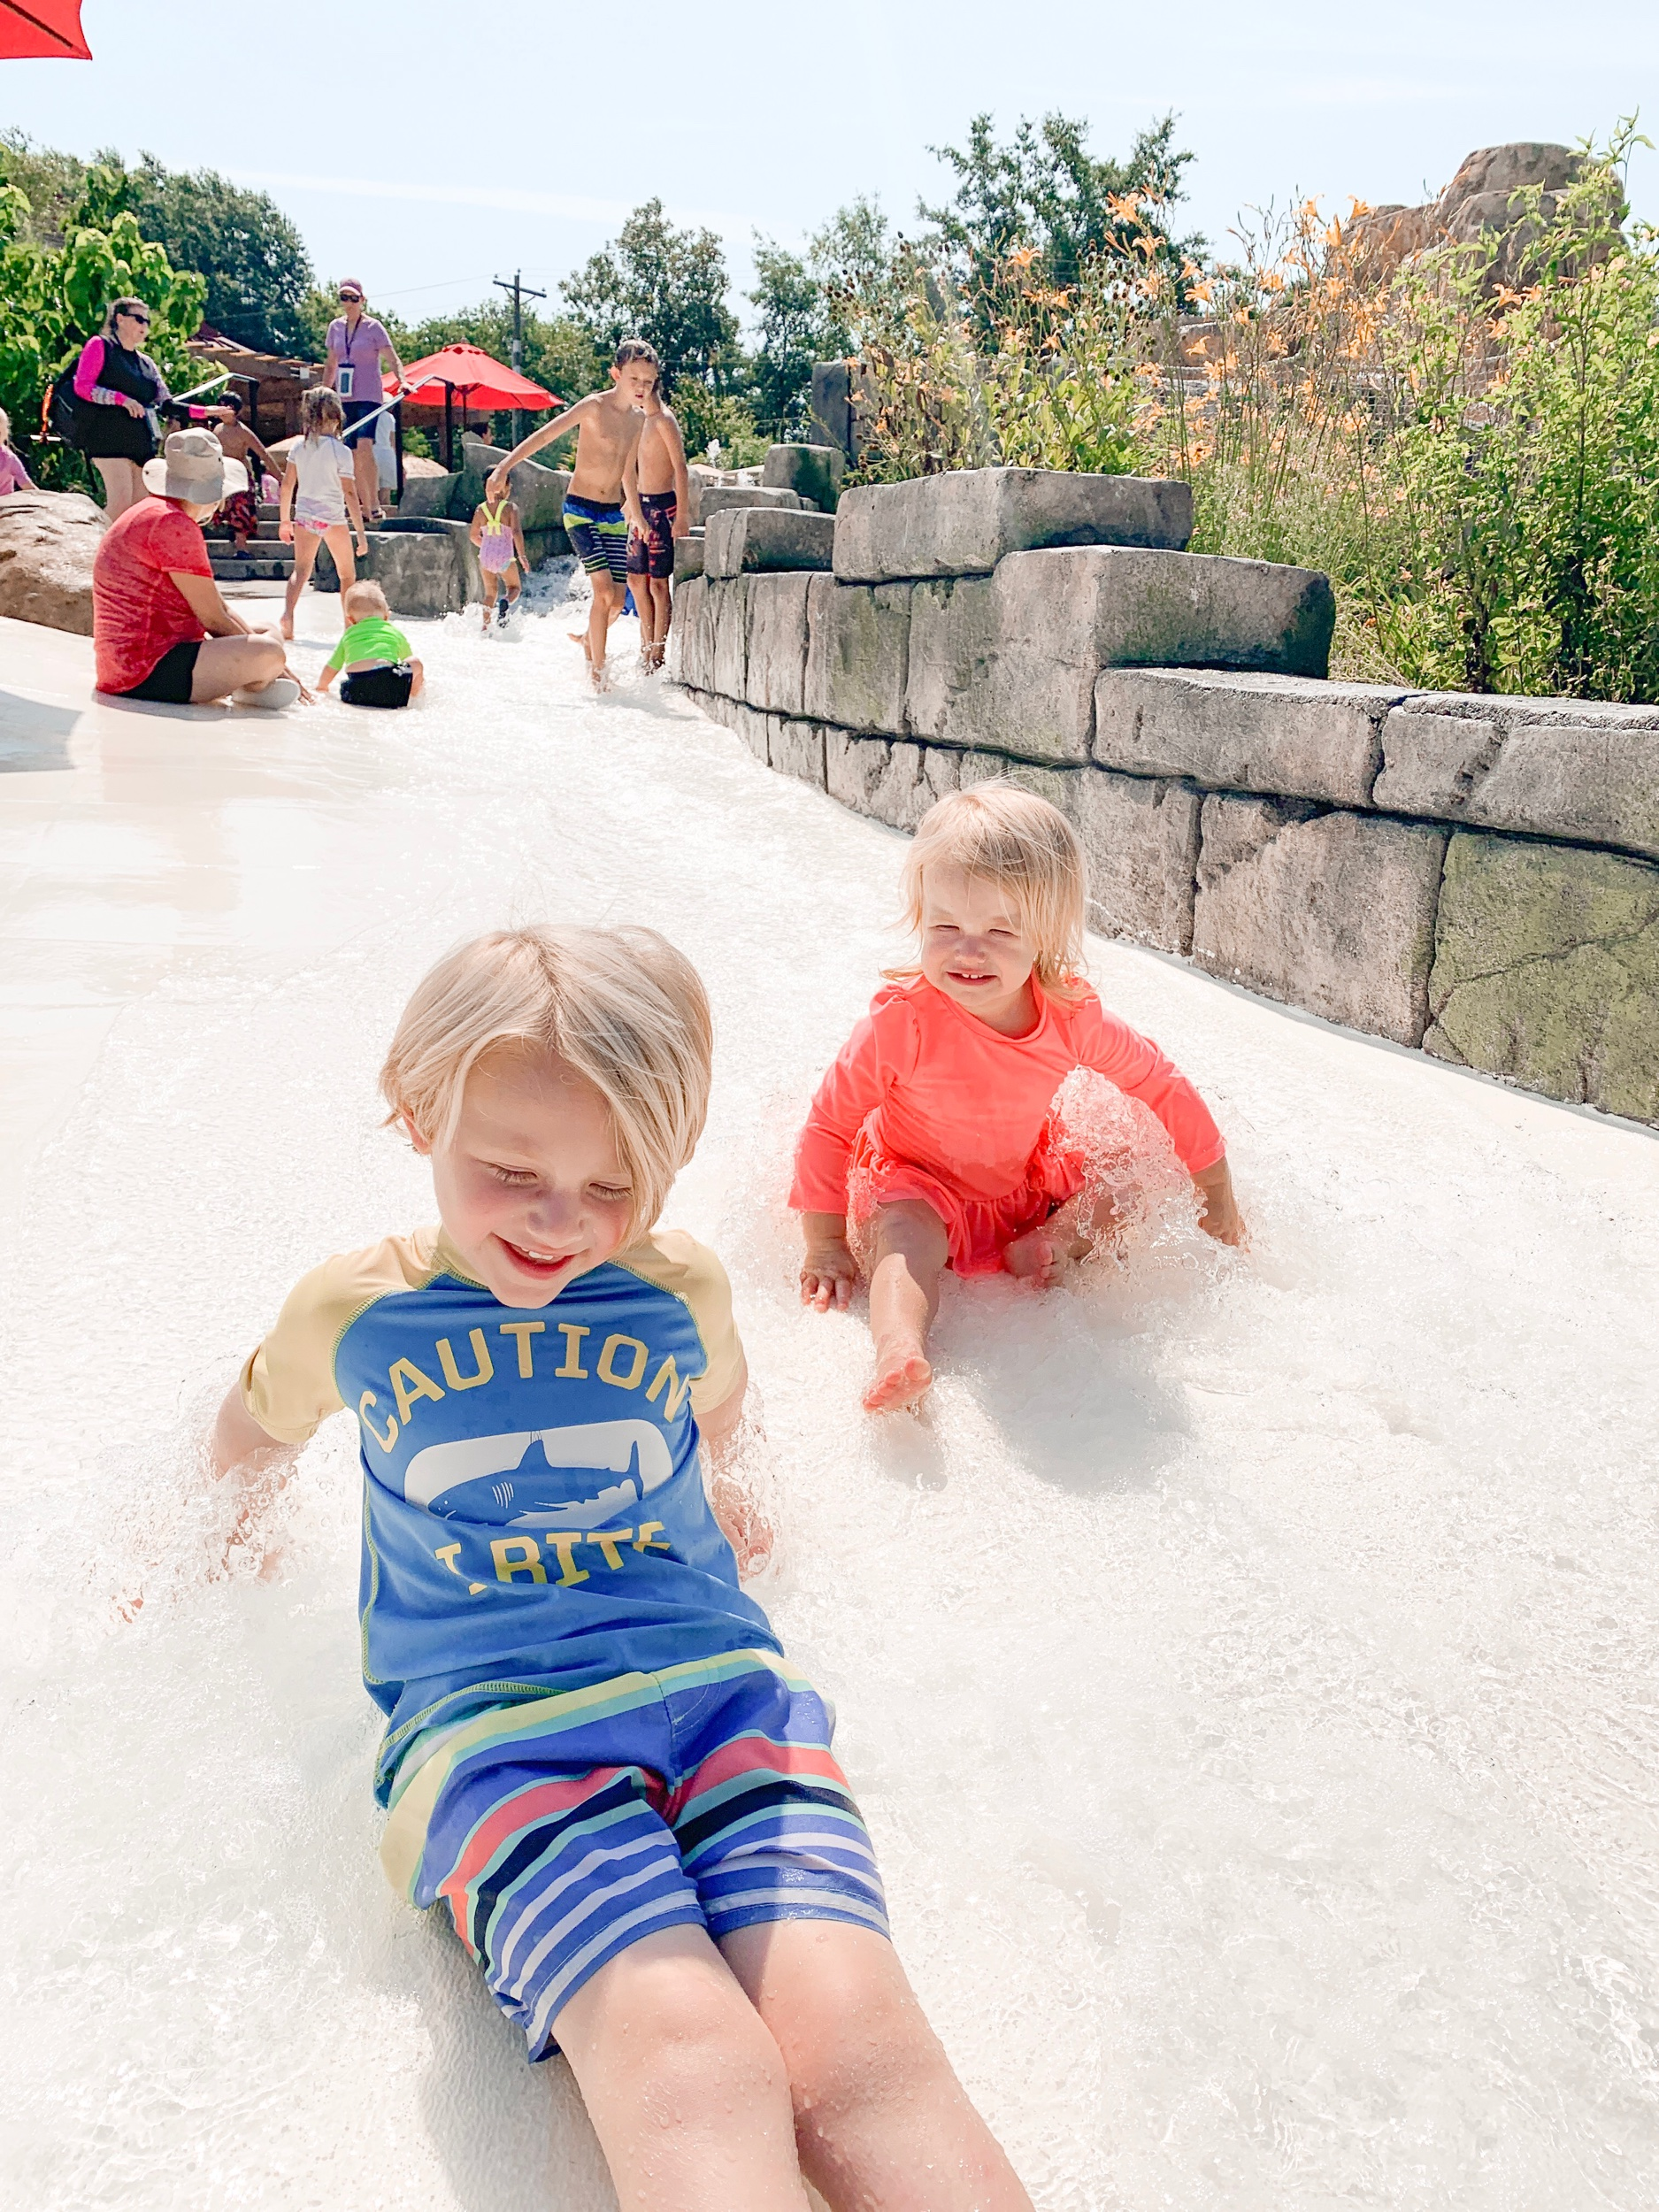 Riverbanks Zoo & Botanical Gardens is one if the best zoos in America! It has this cool interactive children's play zone with Waterfall Junction and so much more!!